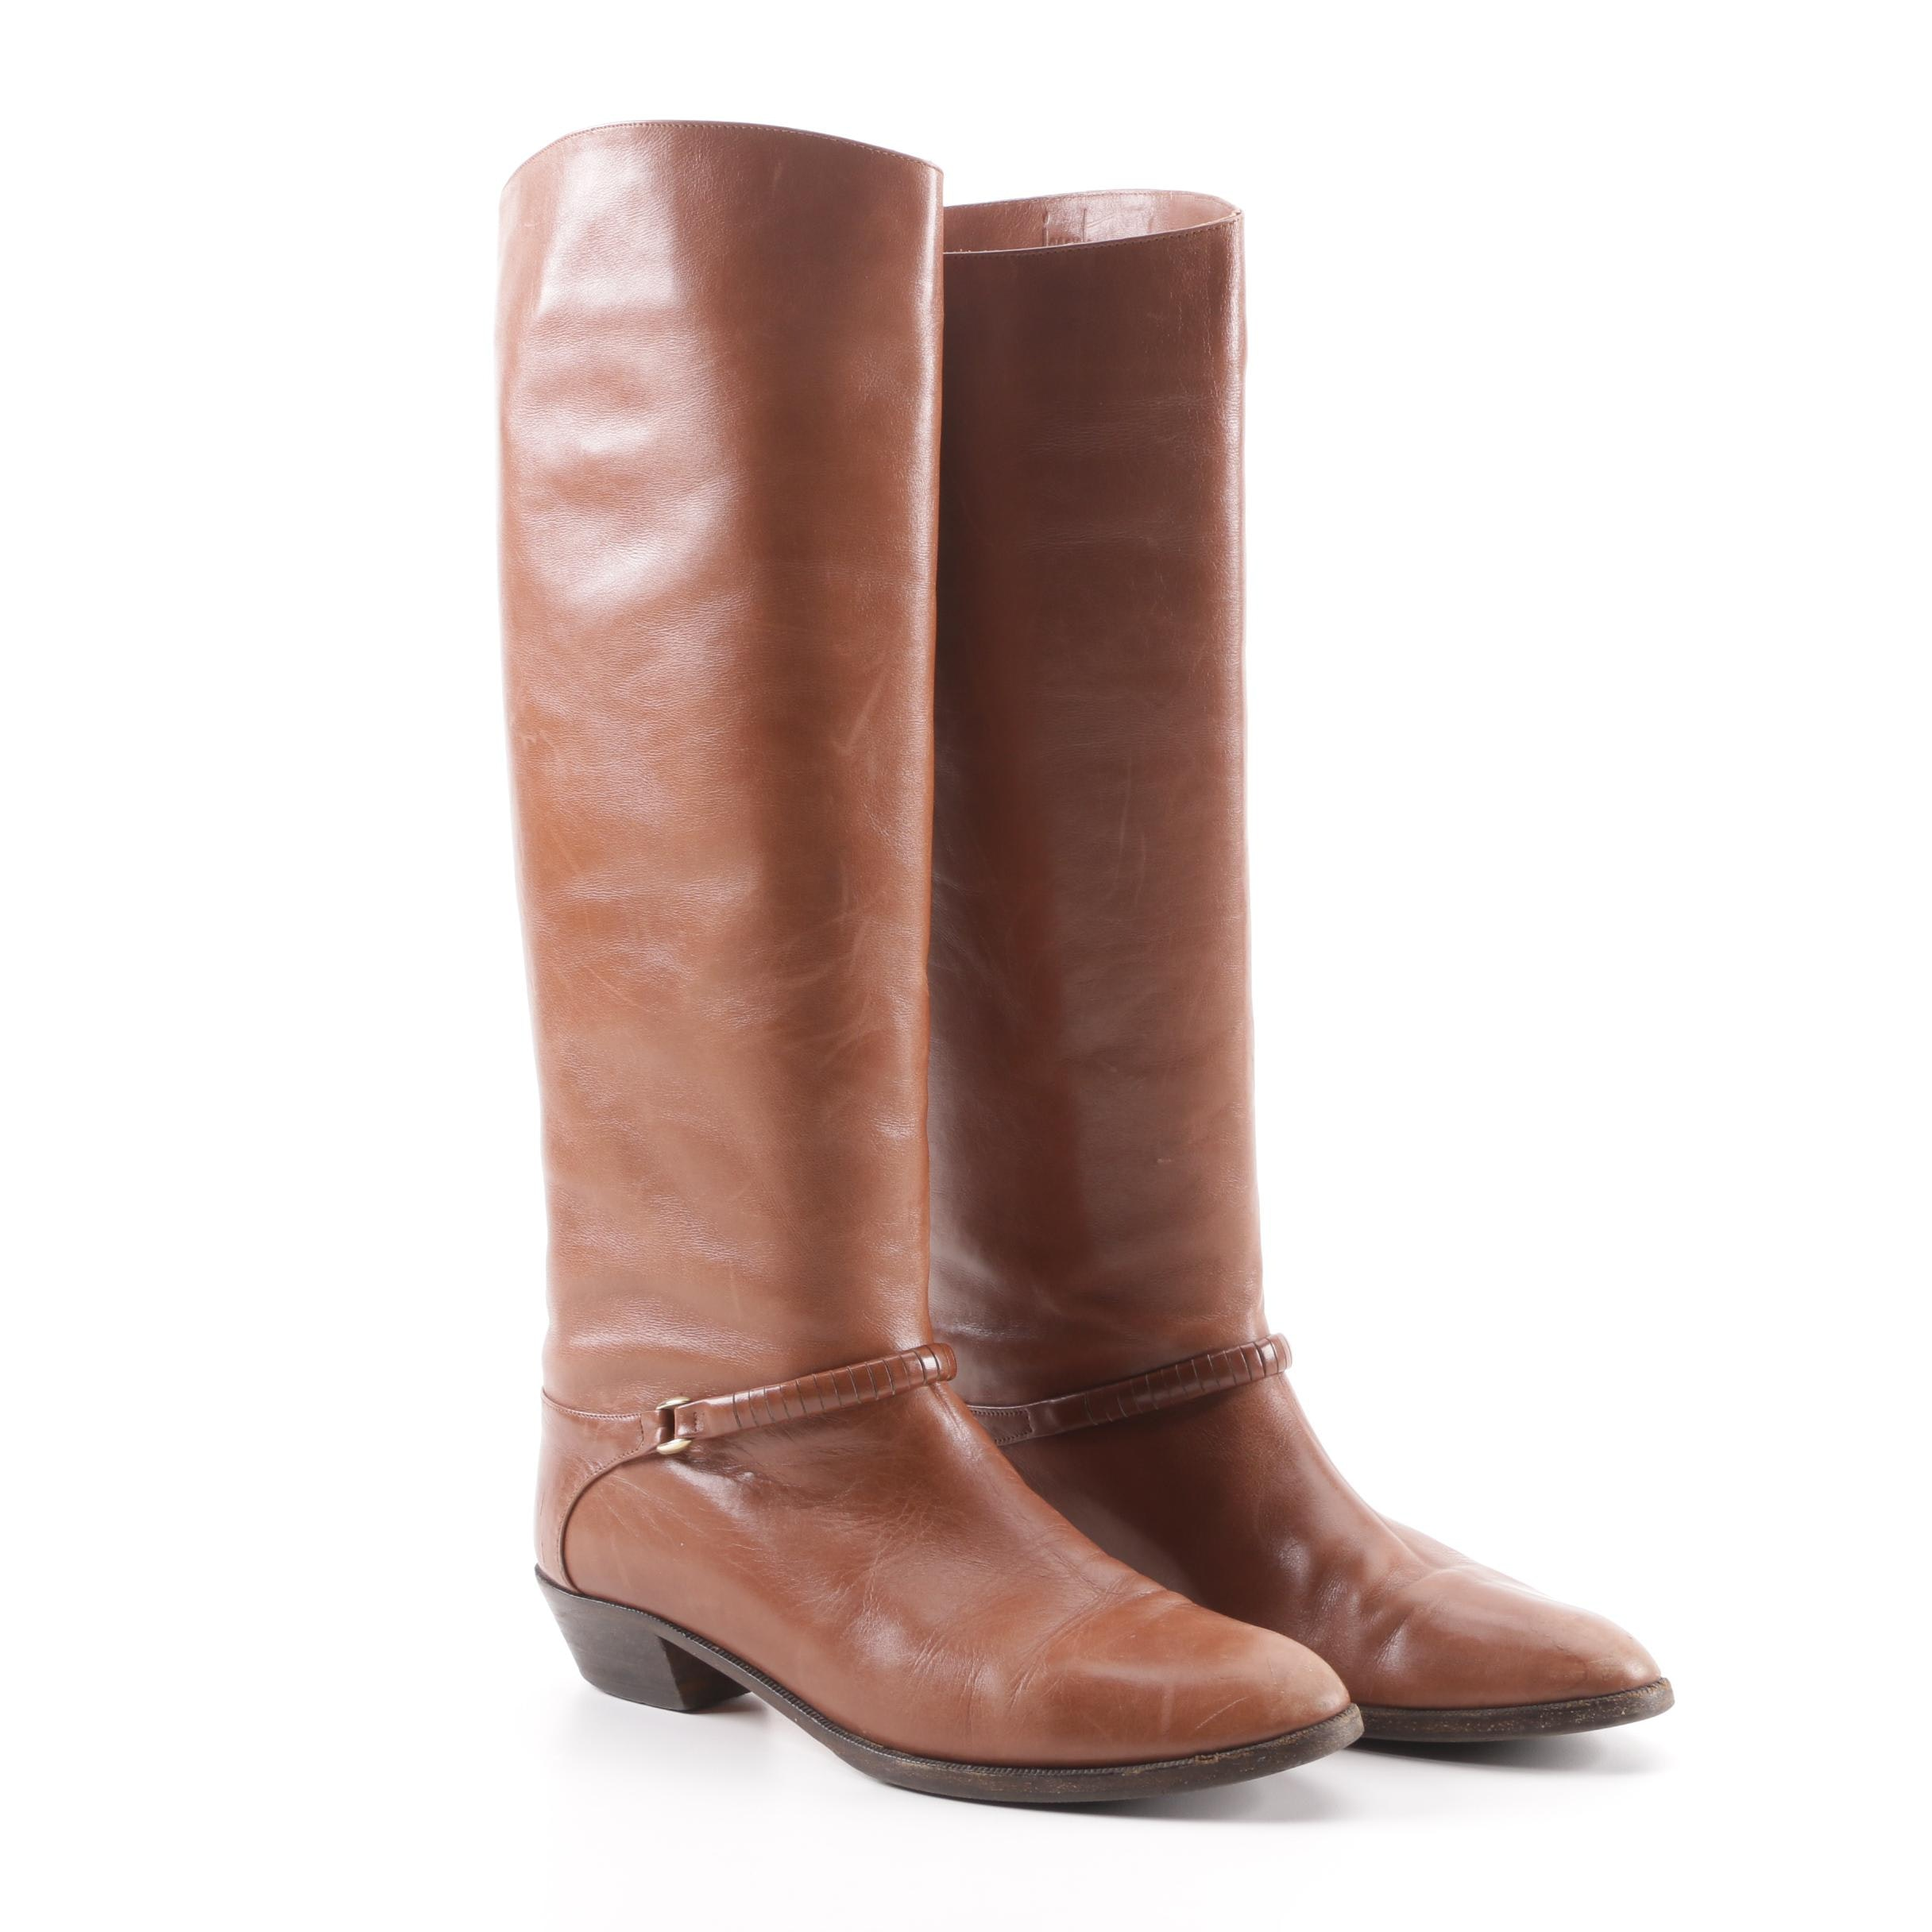 Joseph Brown Leather Tall Boots with Ankle Buckle